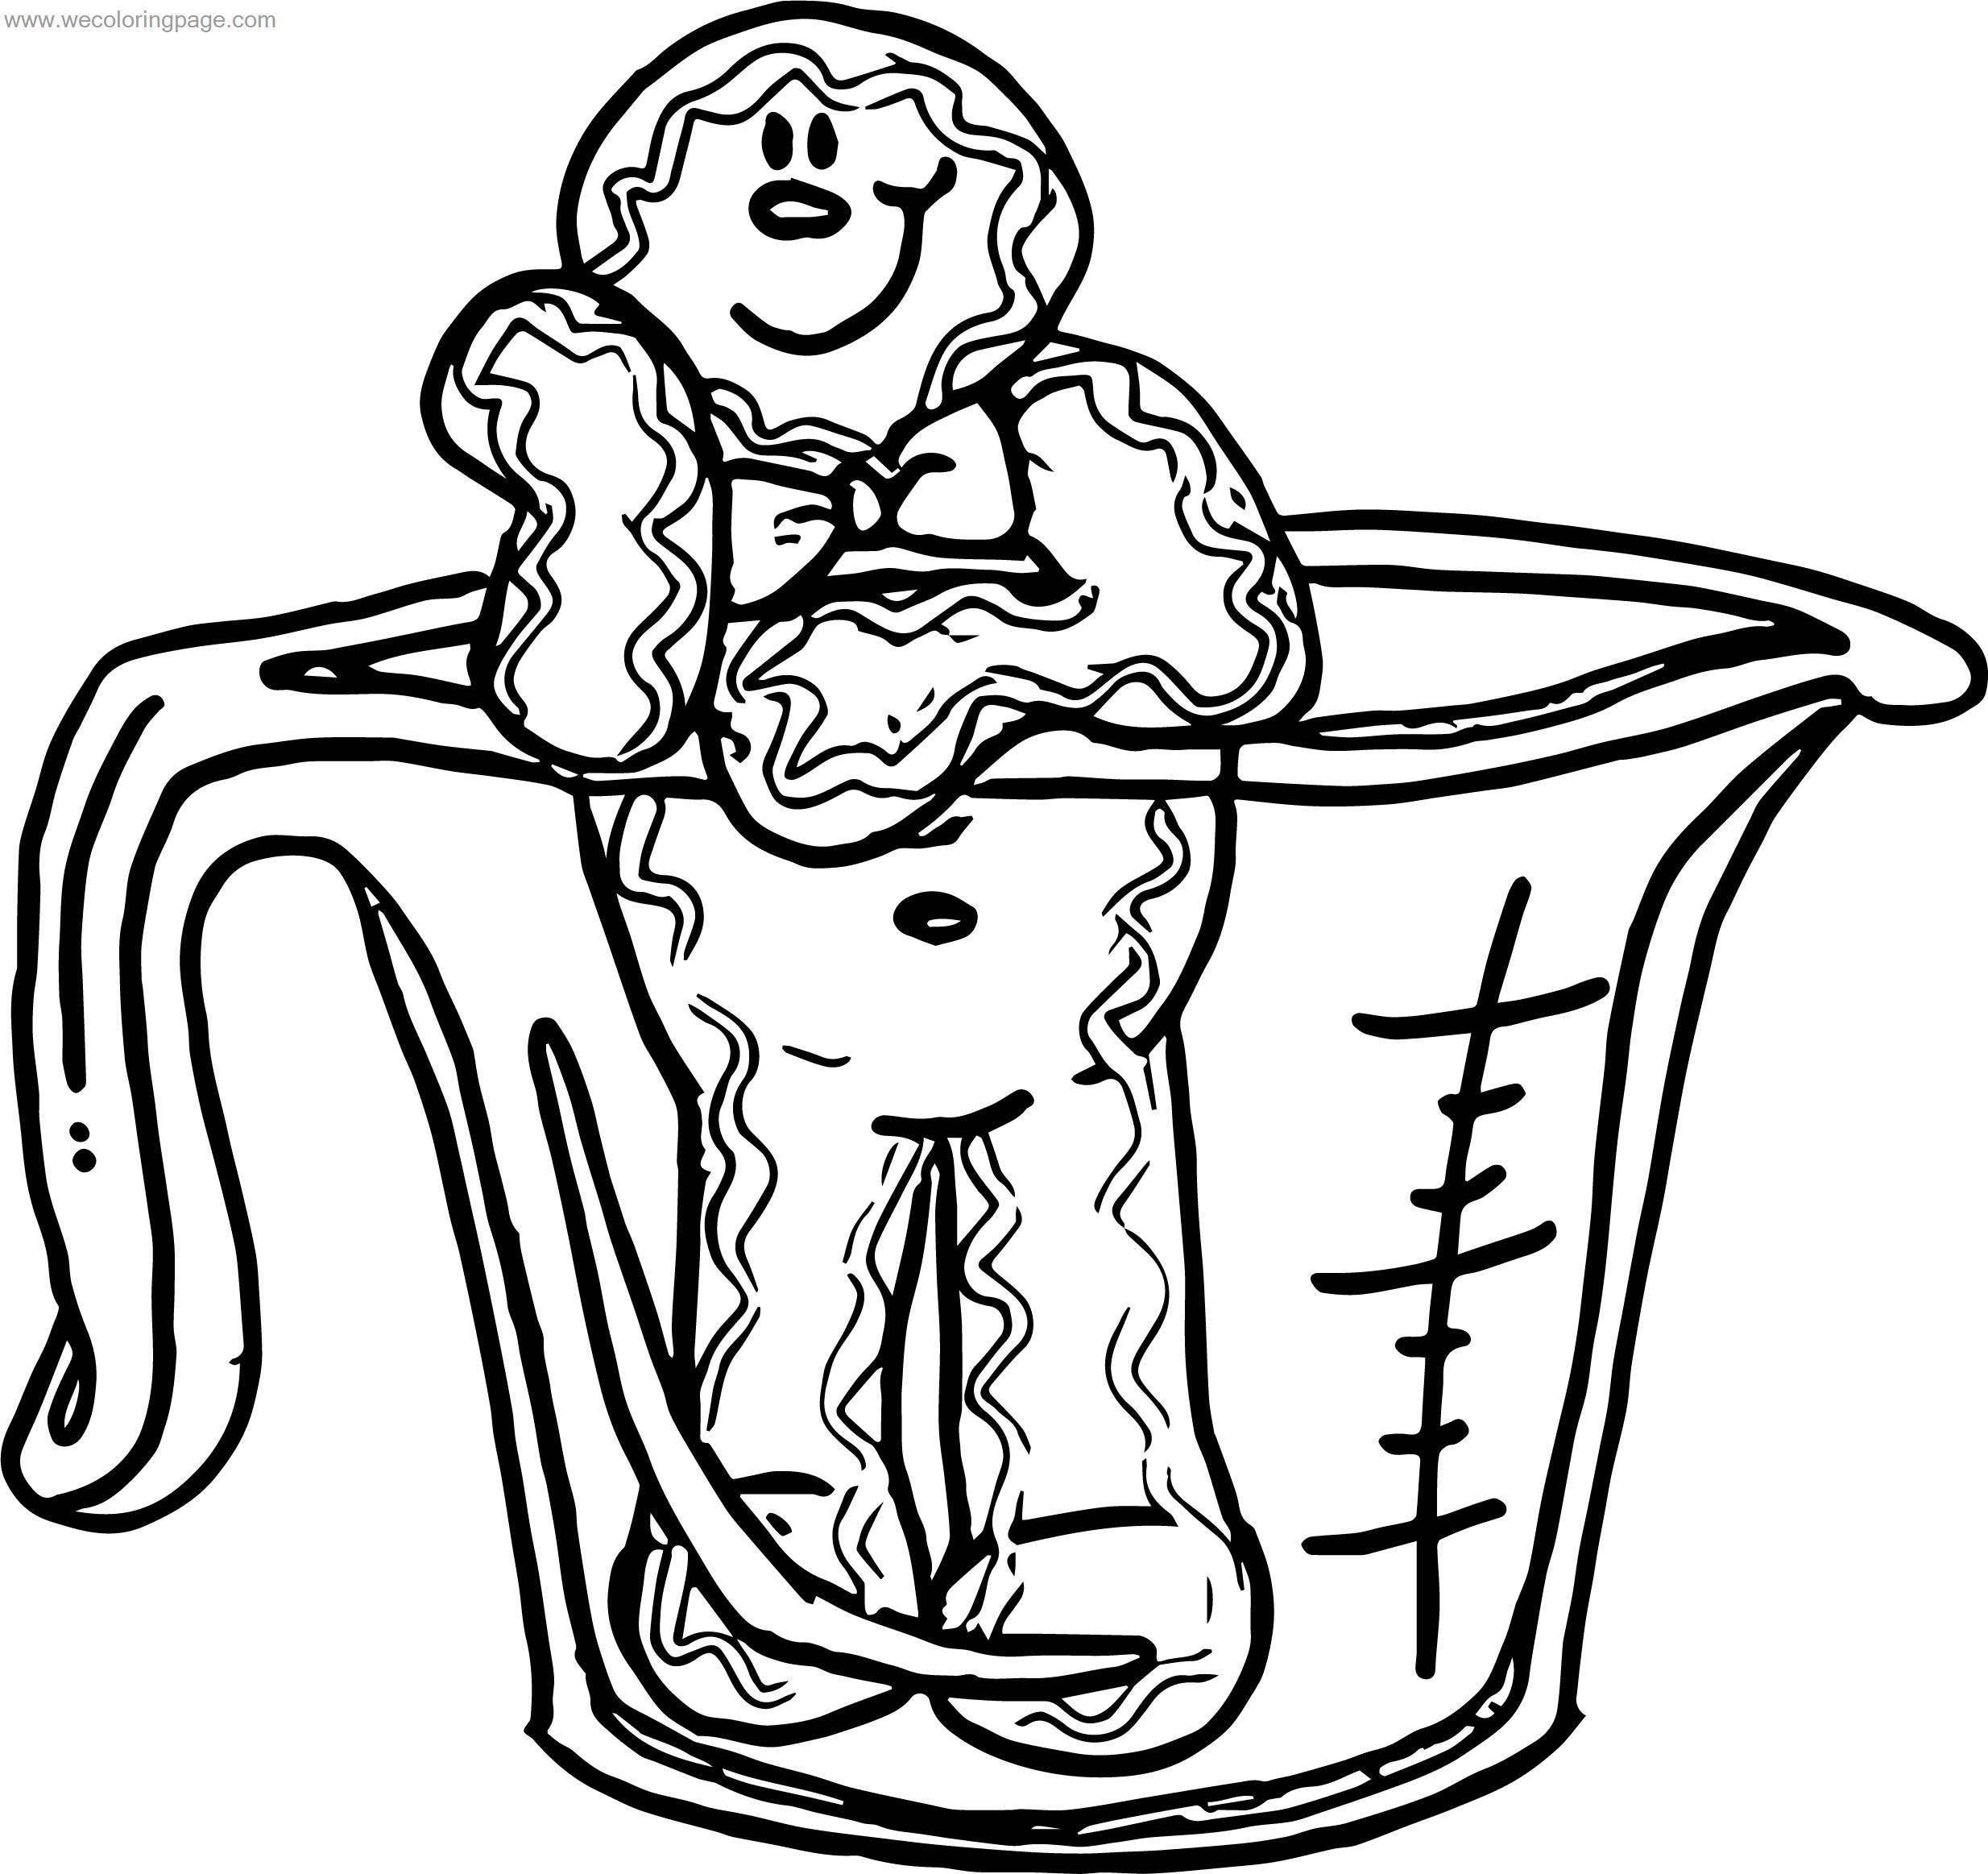 Gingerbread Man December Free Images Gingerbread House Coloring Page